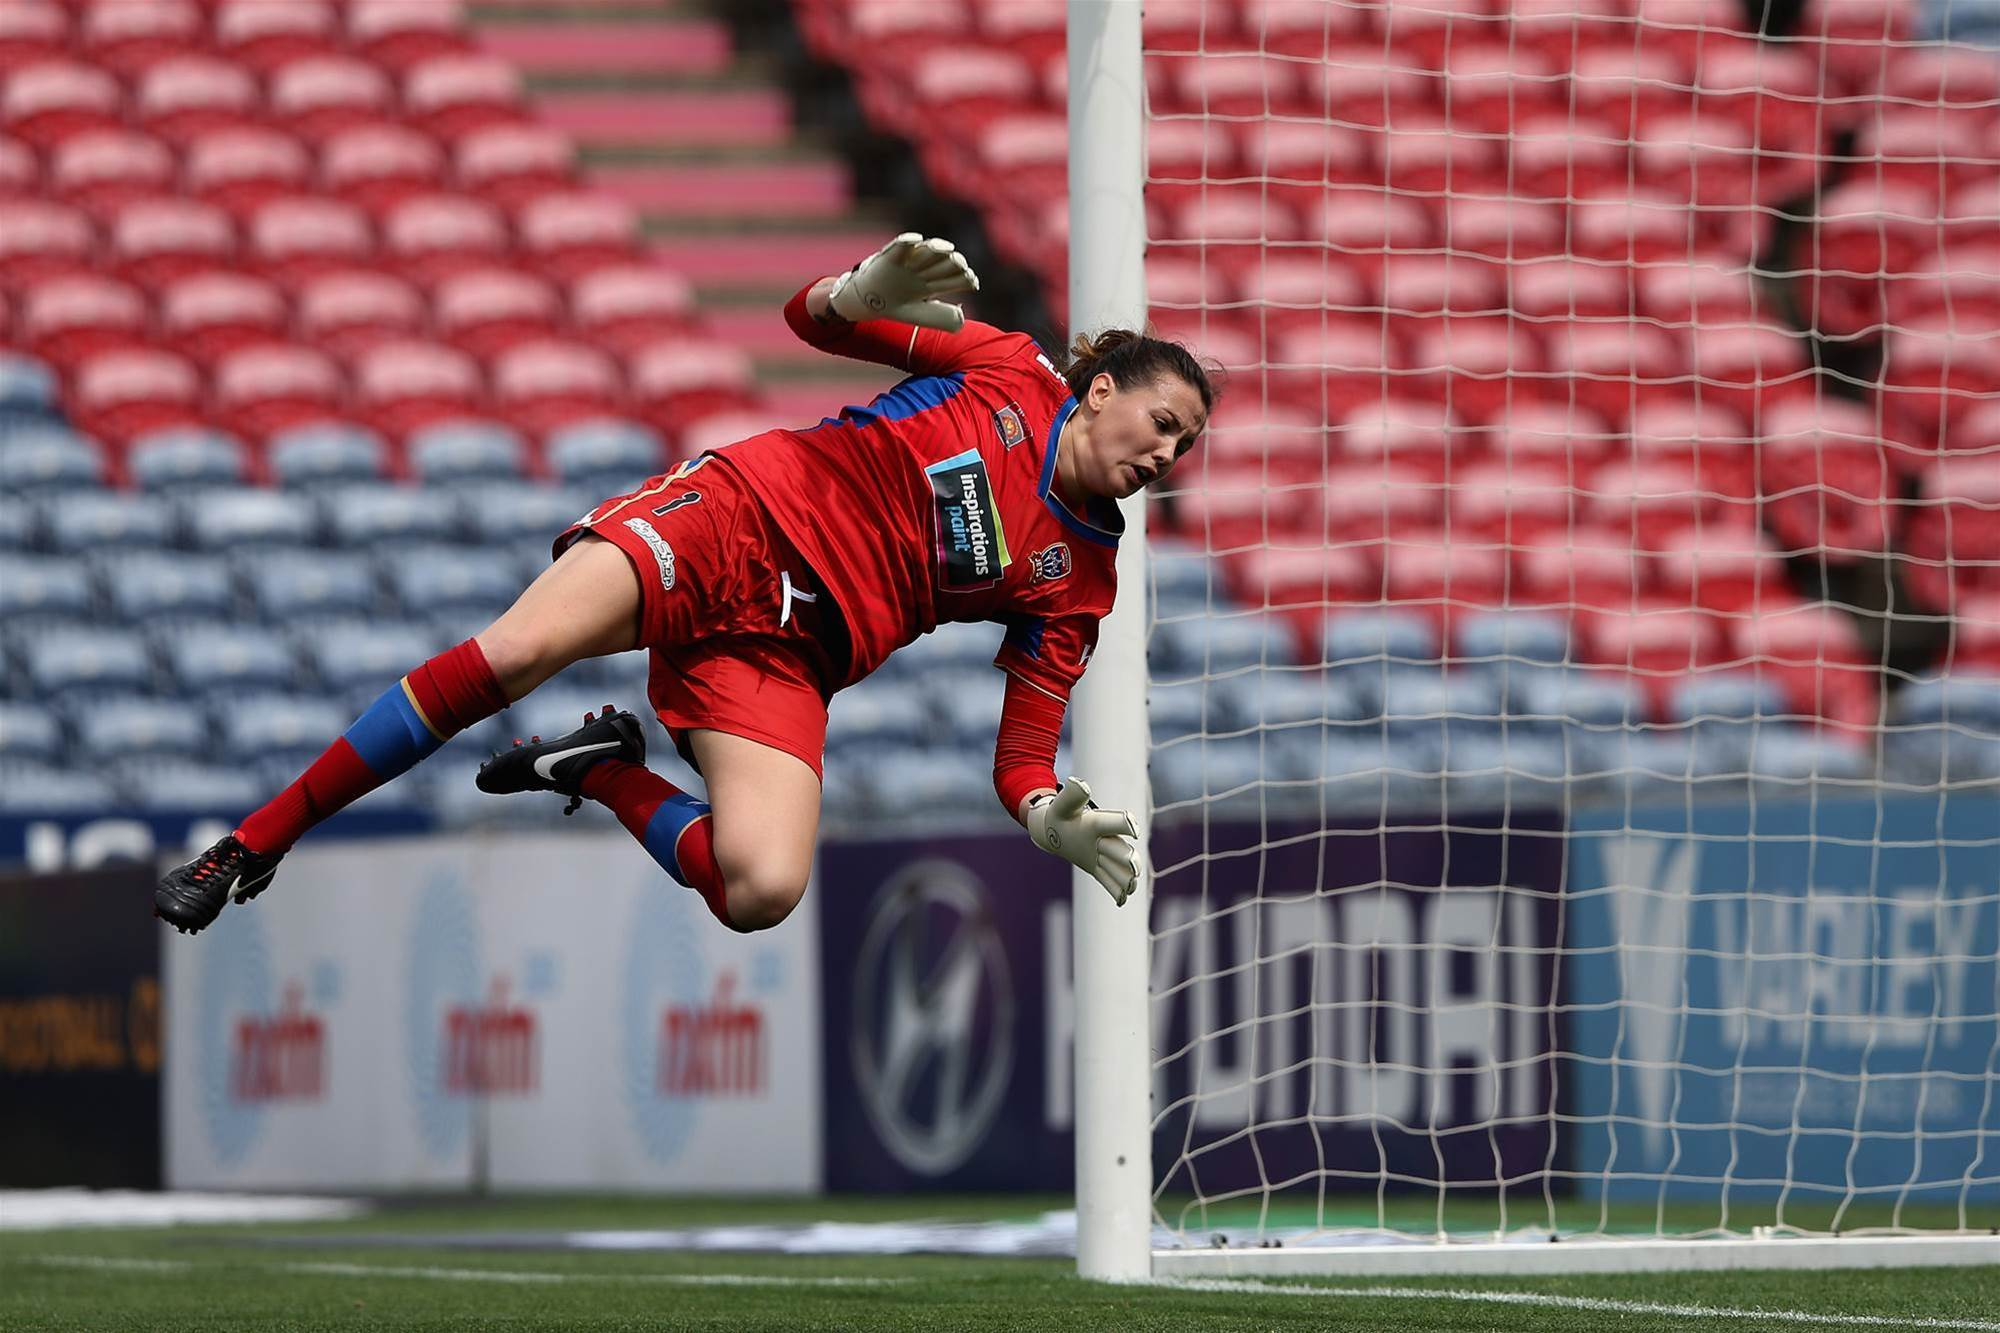 W-League Round 5 pic special